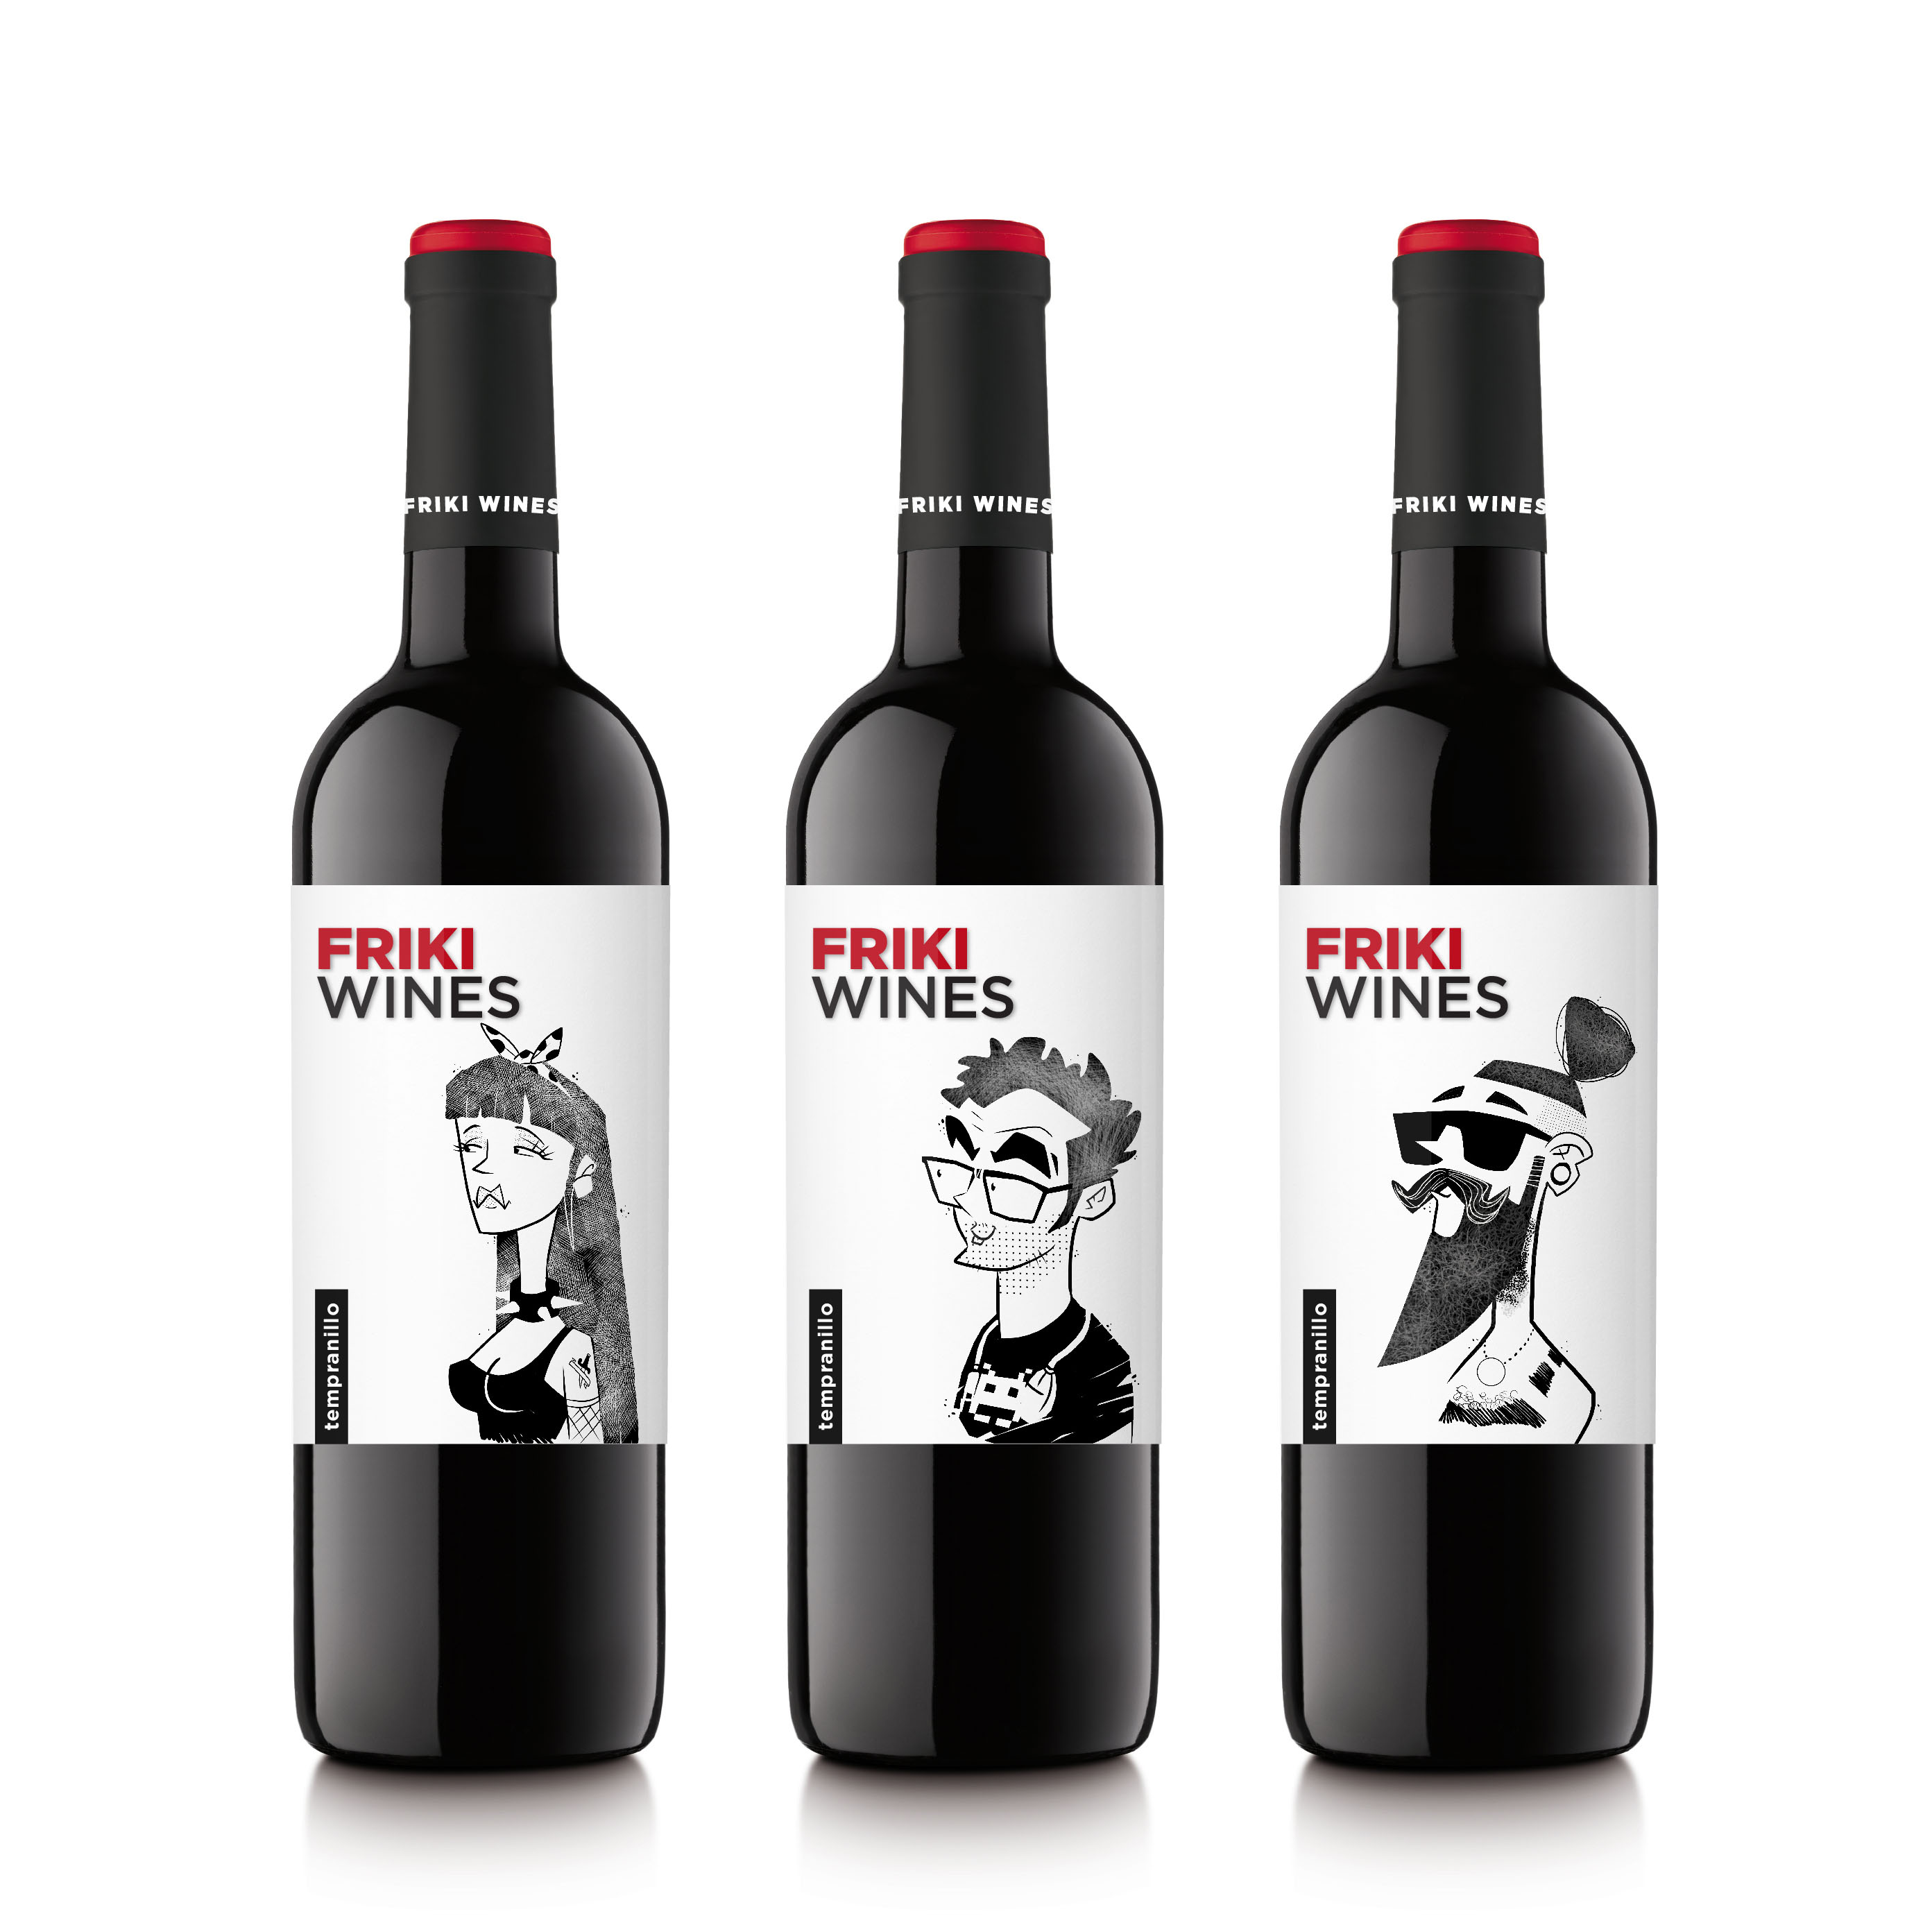 FRIKI WINES by Grow Disseny i Comunicació - Creative Work - $i